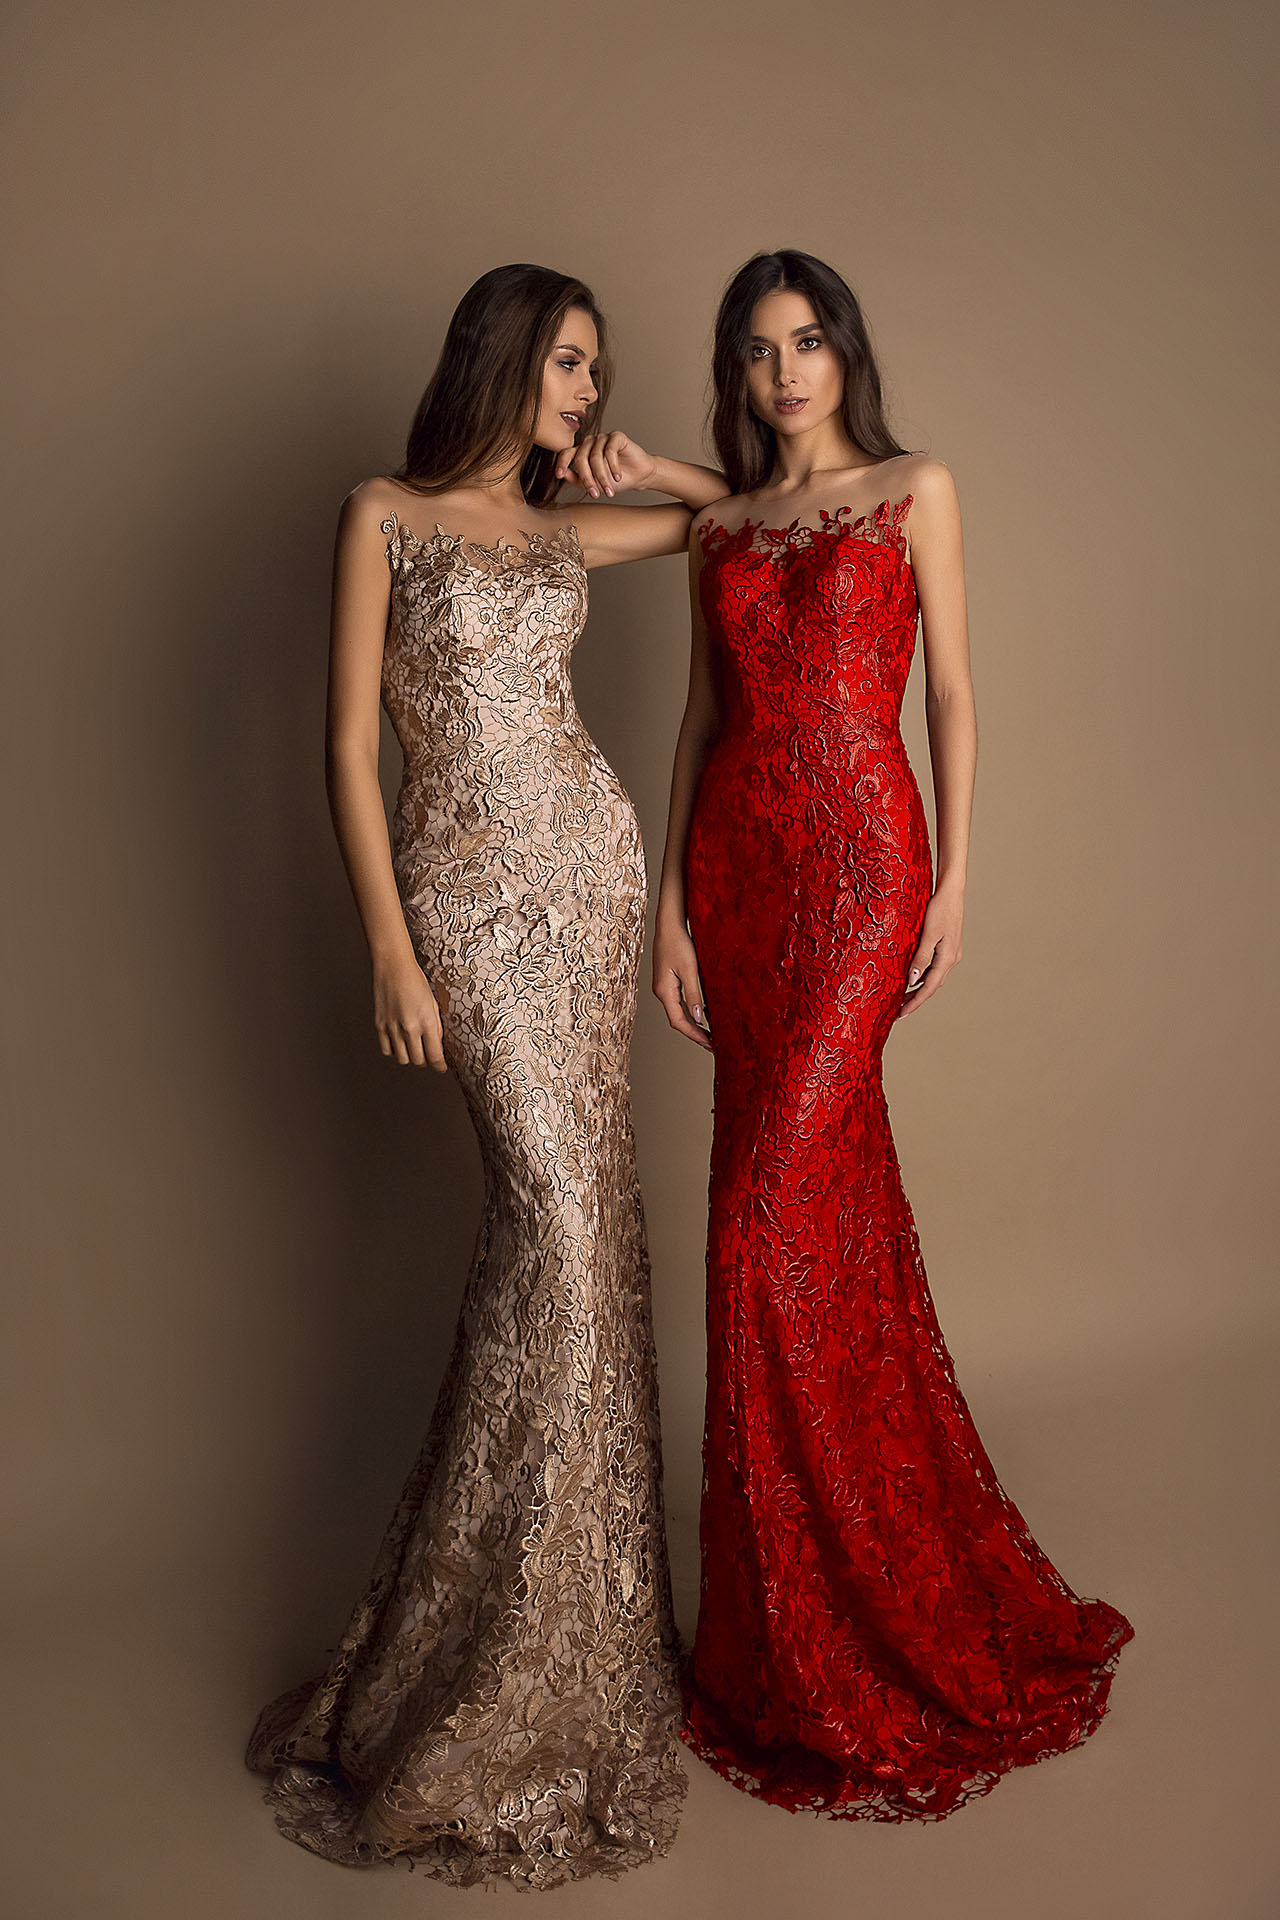 Evening gowns 1603 cappuccino Silhouette  Fitted  Color  Cappuccino  Red  Neckline  Sweetheart  Illusion  Sleeves  Sleeveless  Train  No train